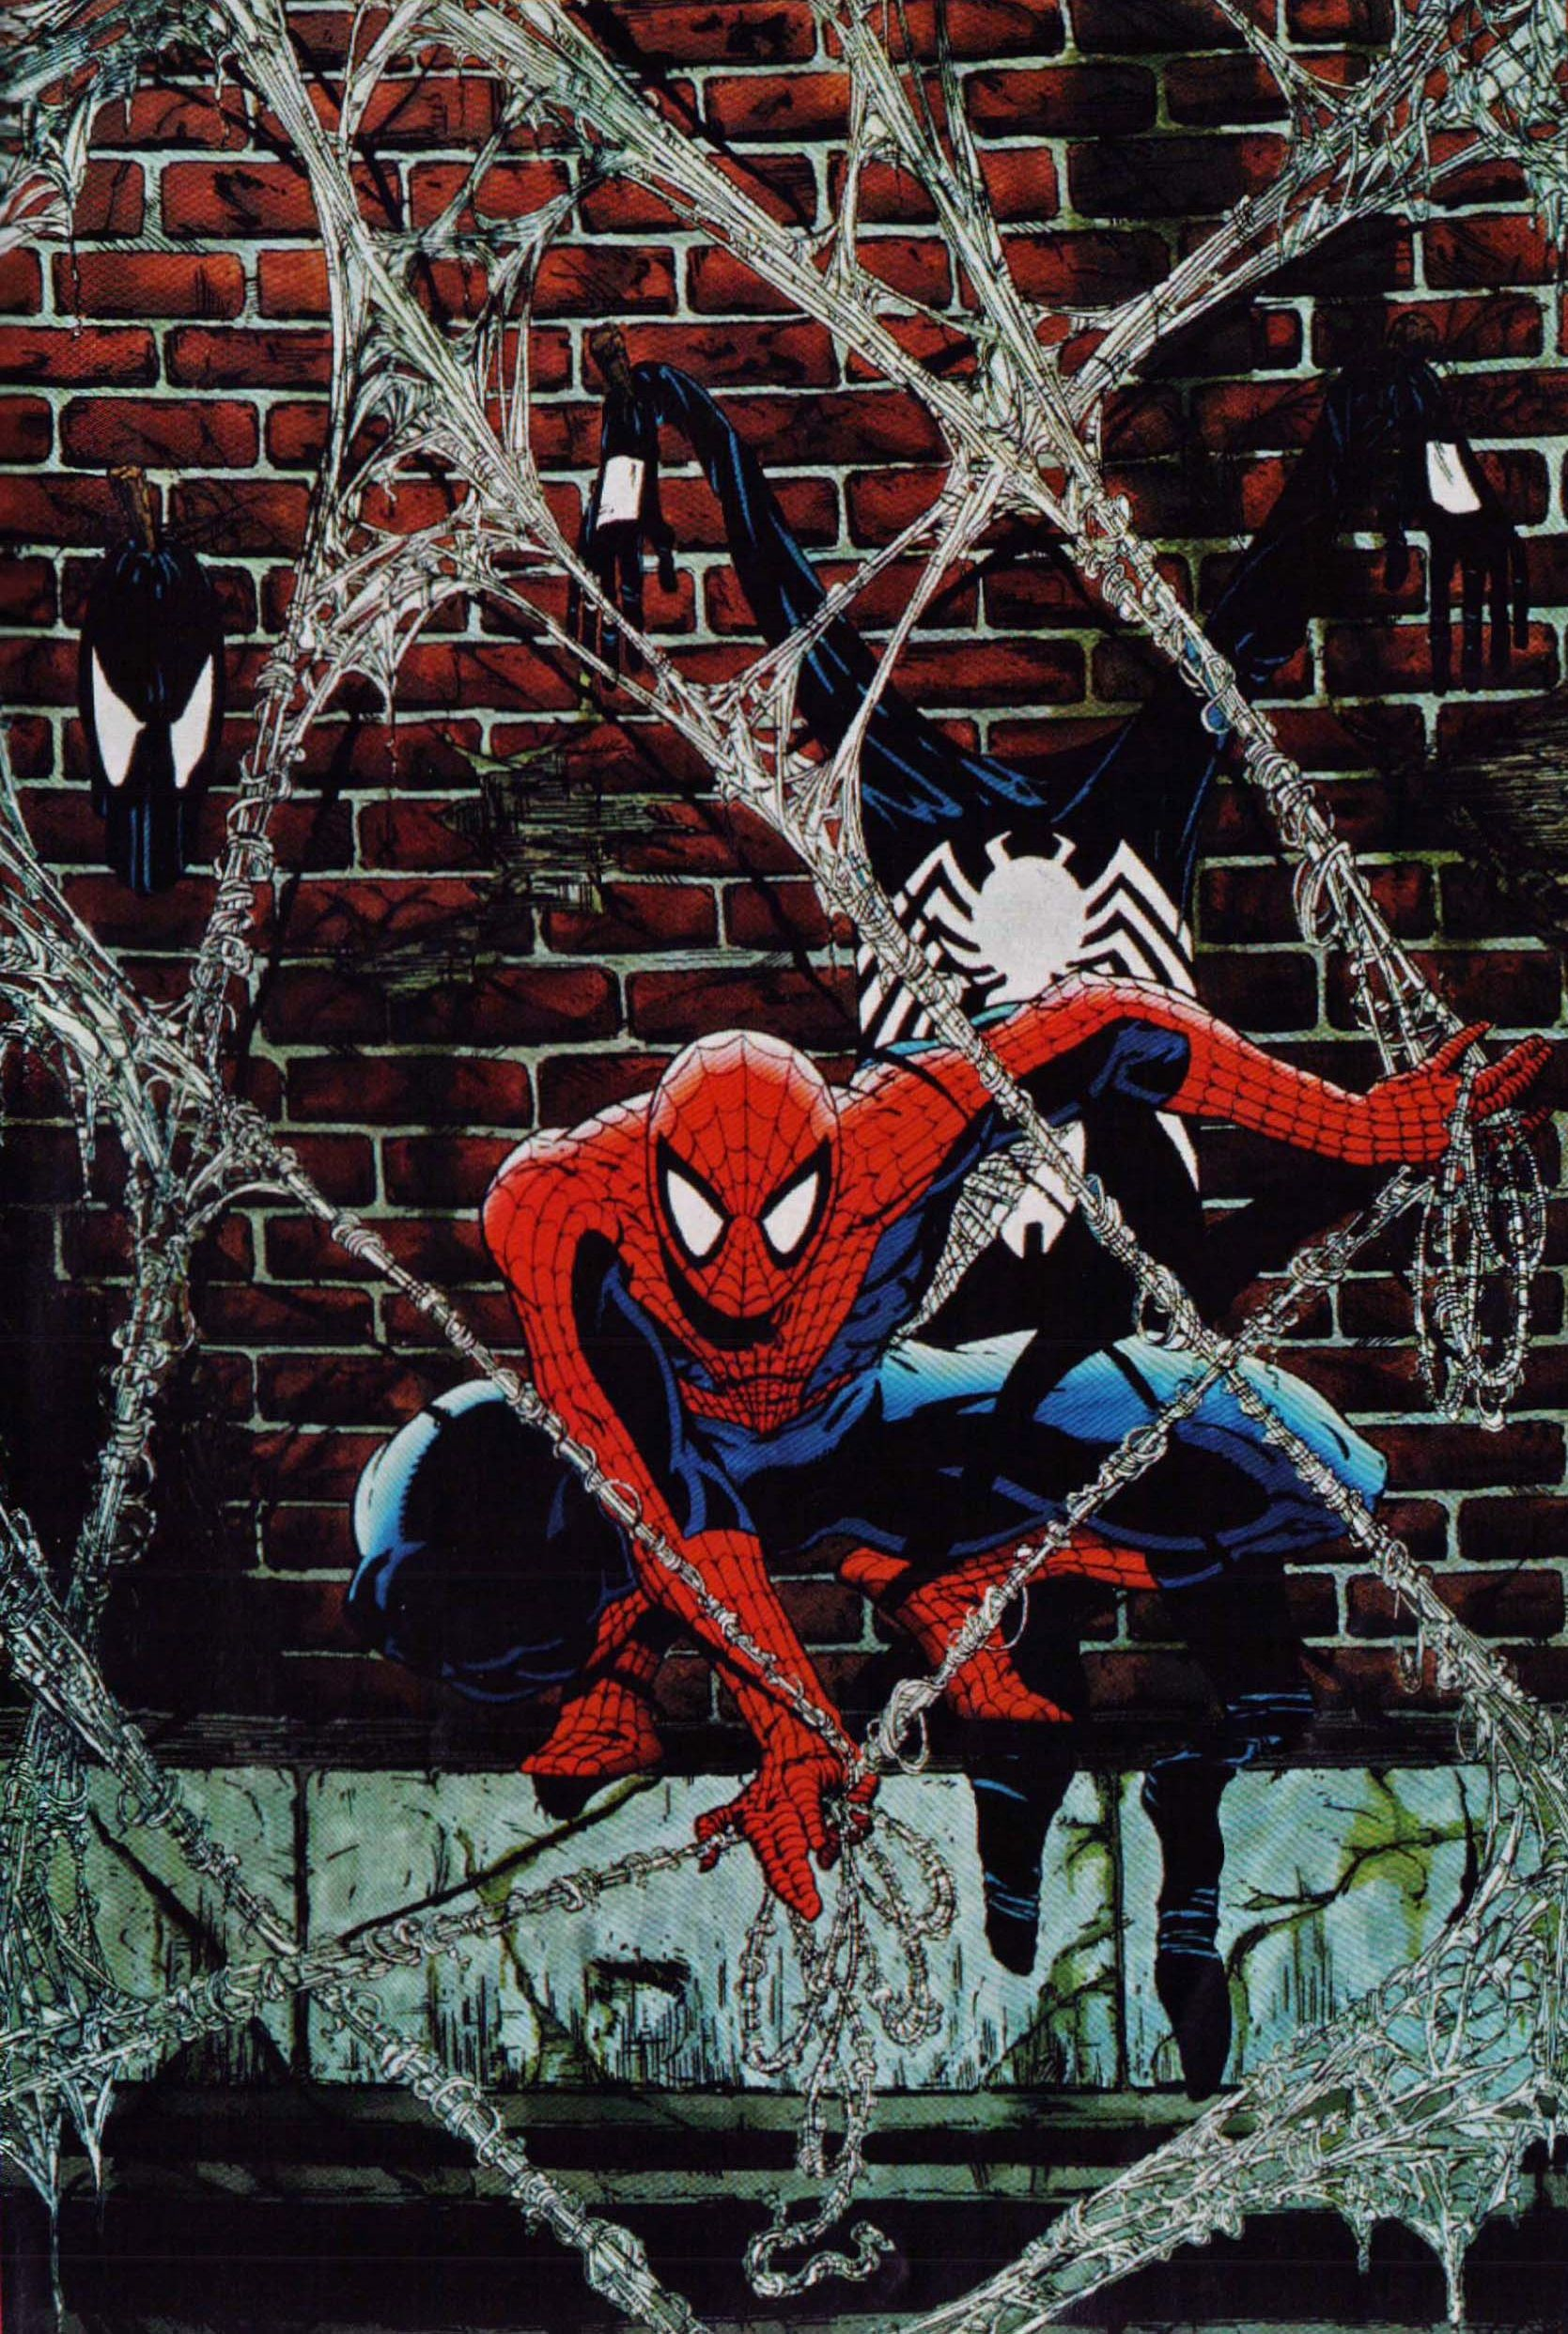 Spiderman Todd Mcfarlane Amazing Spider-man Marvel Comics